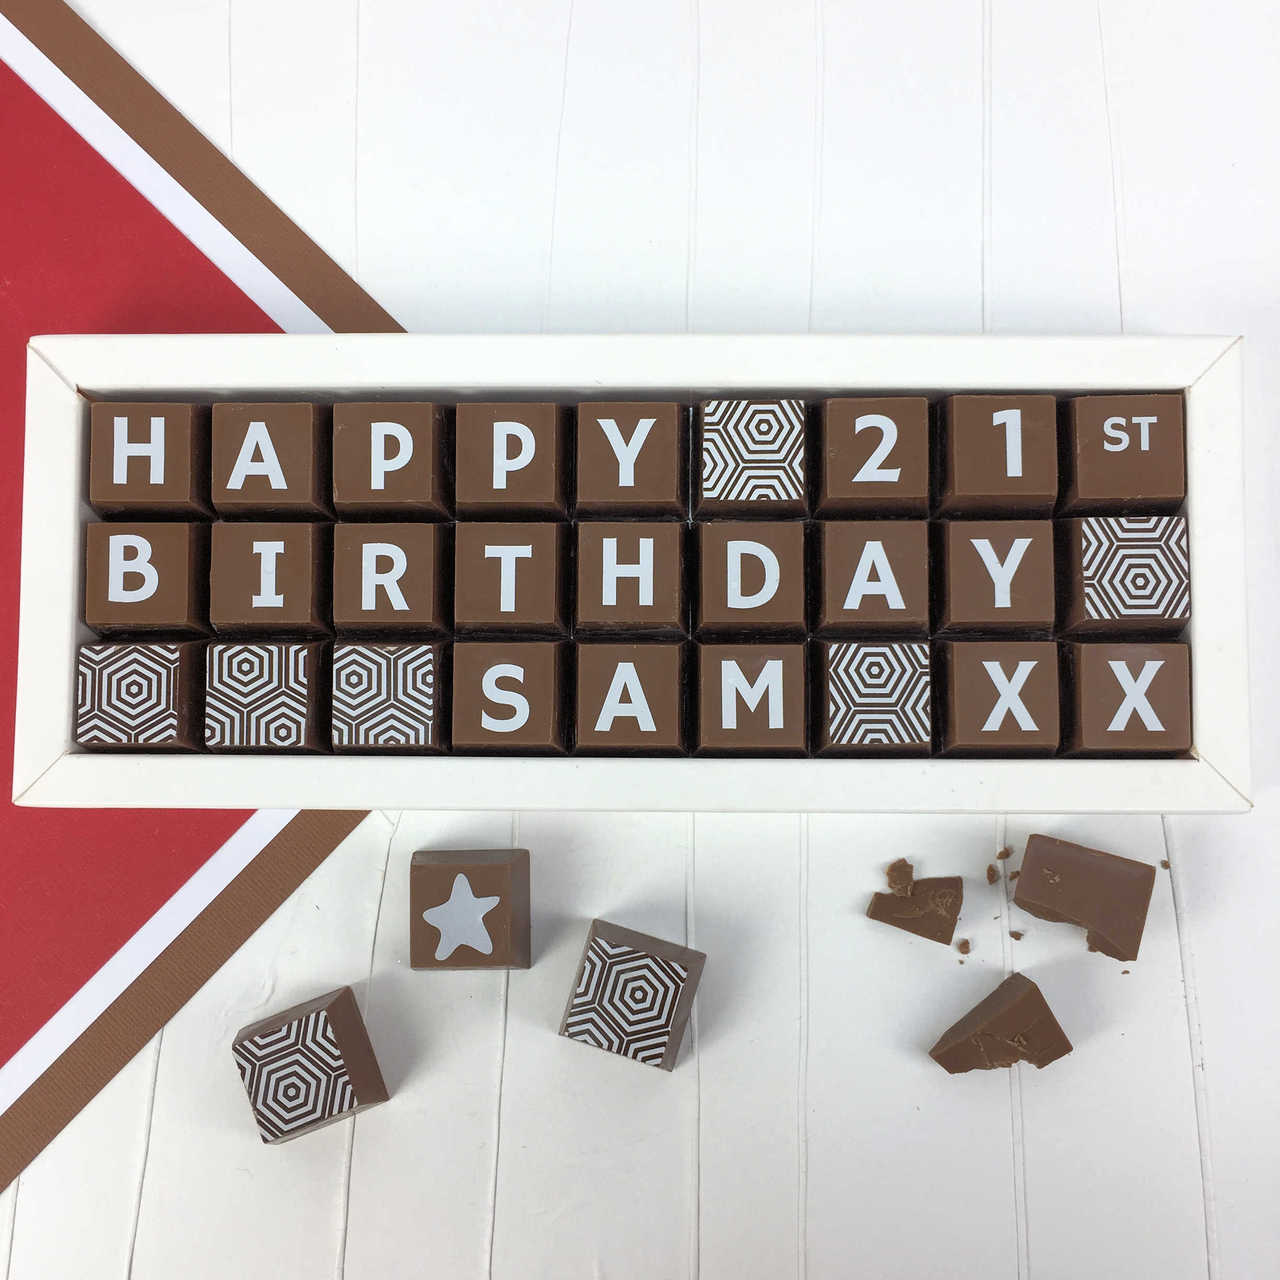 Personalised Birthday Chocolate Box With Name